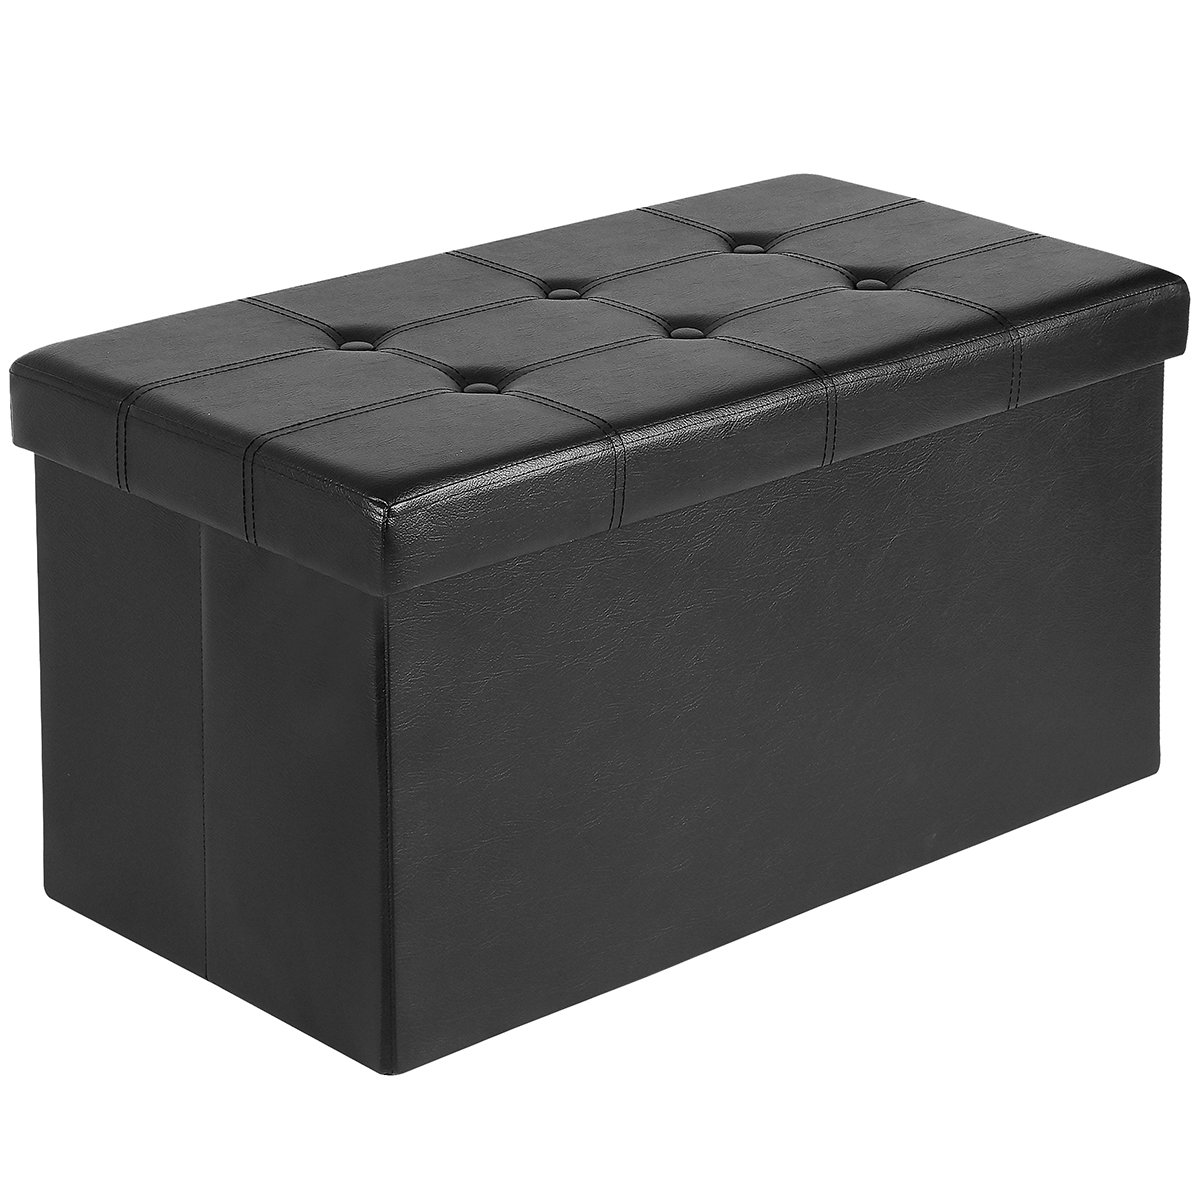 Ulikit L Black Storage Ottoman with Memory Foam Seat, Folding Foot Rest Stools Table Tufted Ottomans Bench with Faux Leather,